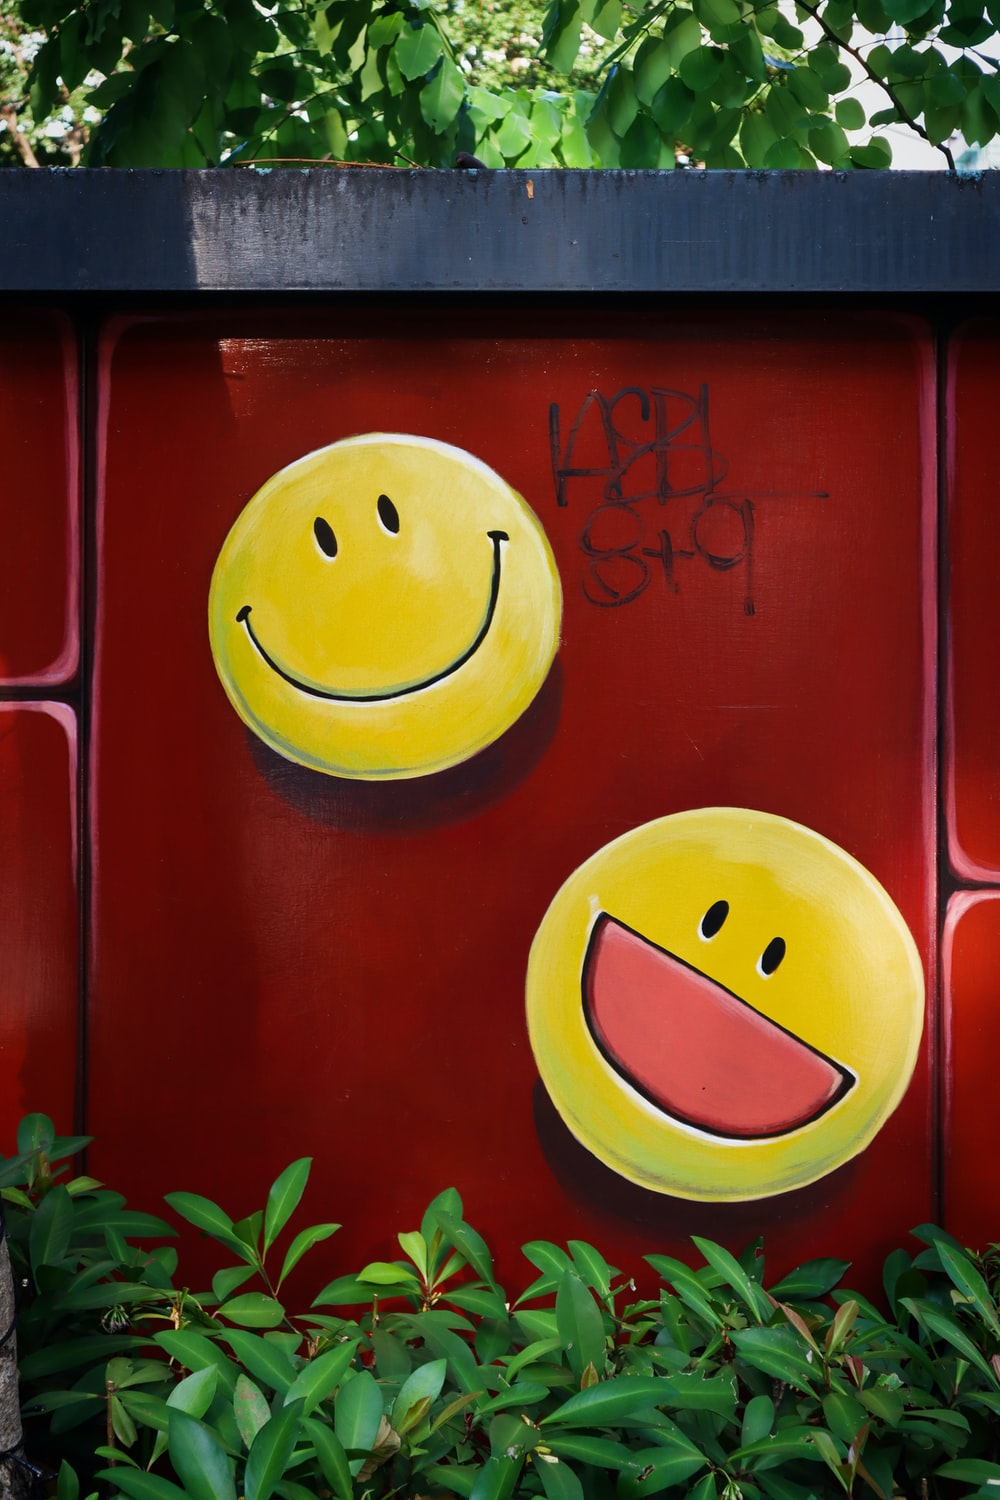 red and yellow smiley face